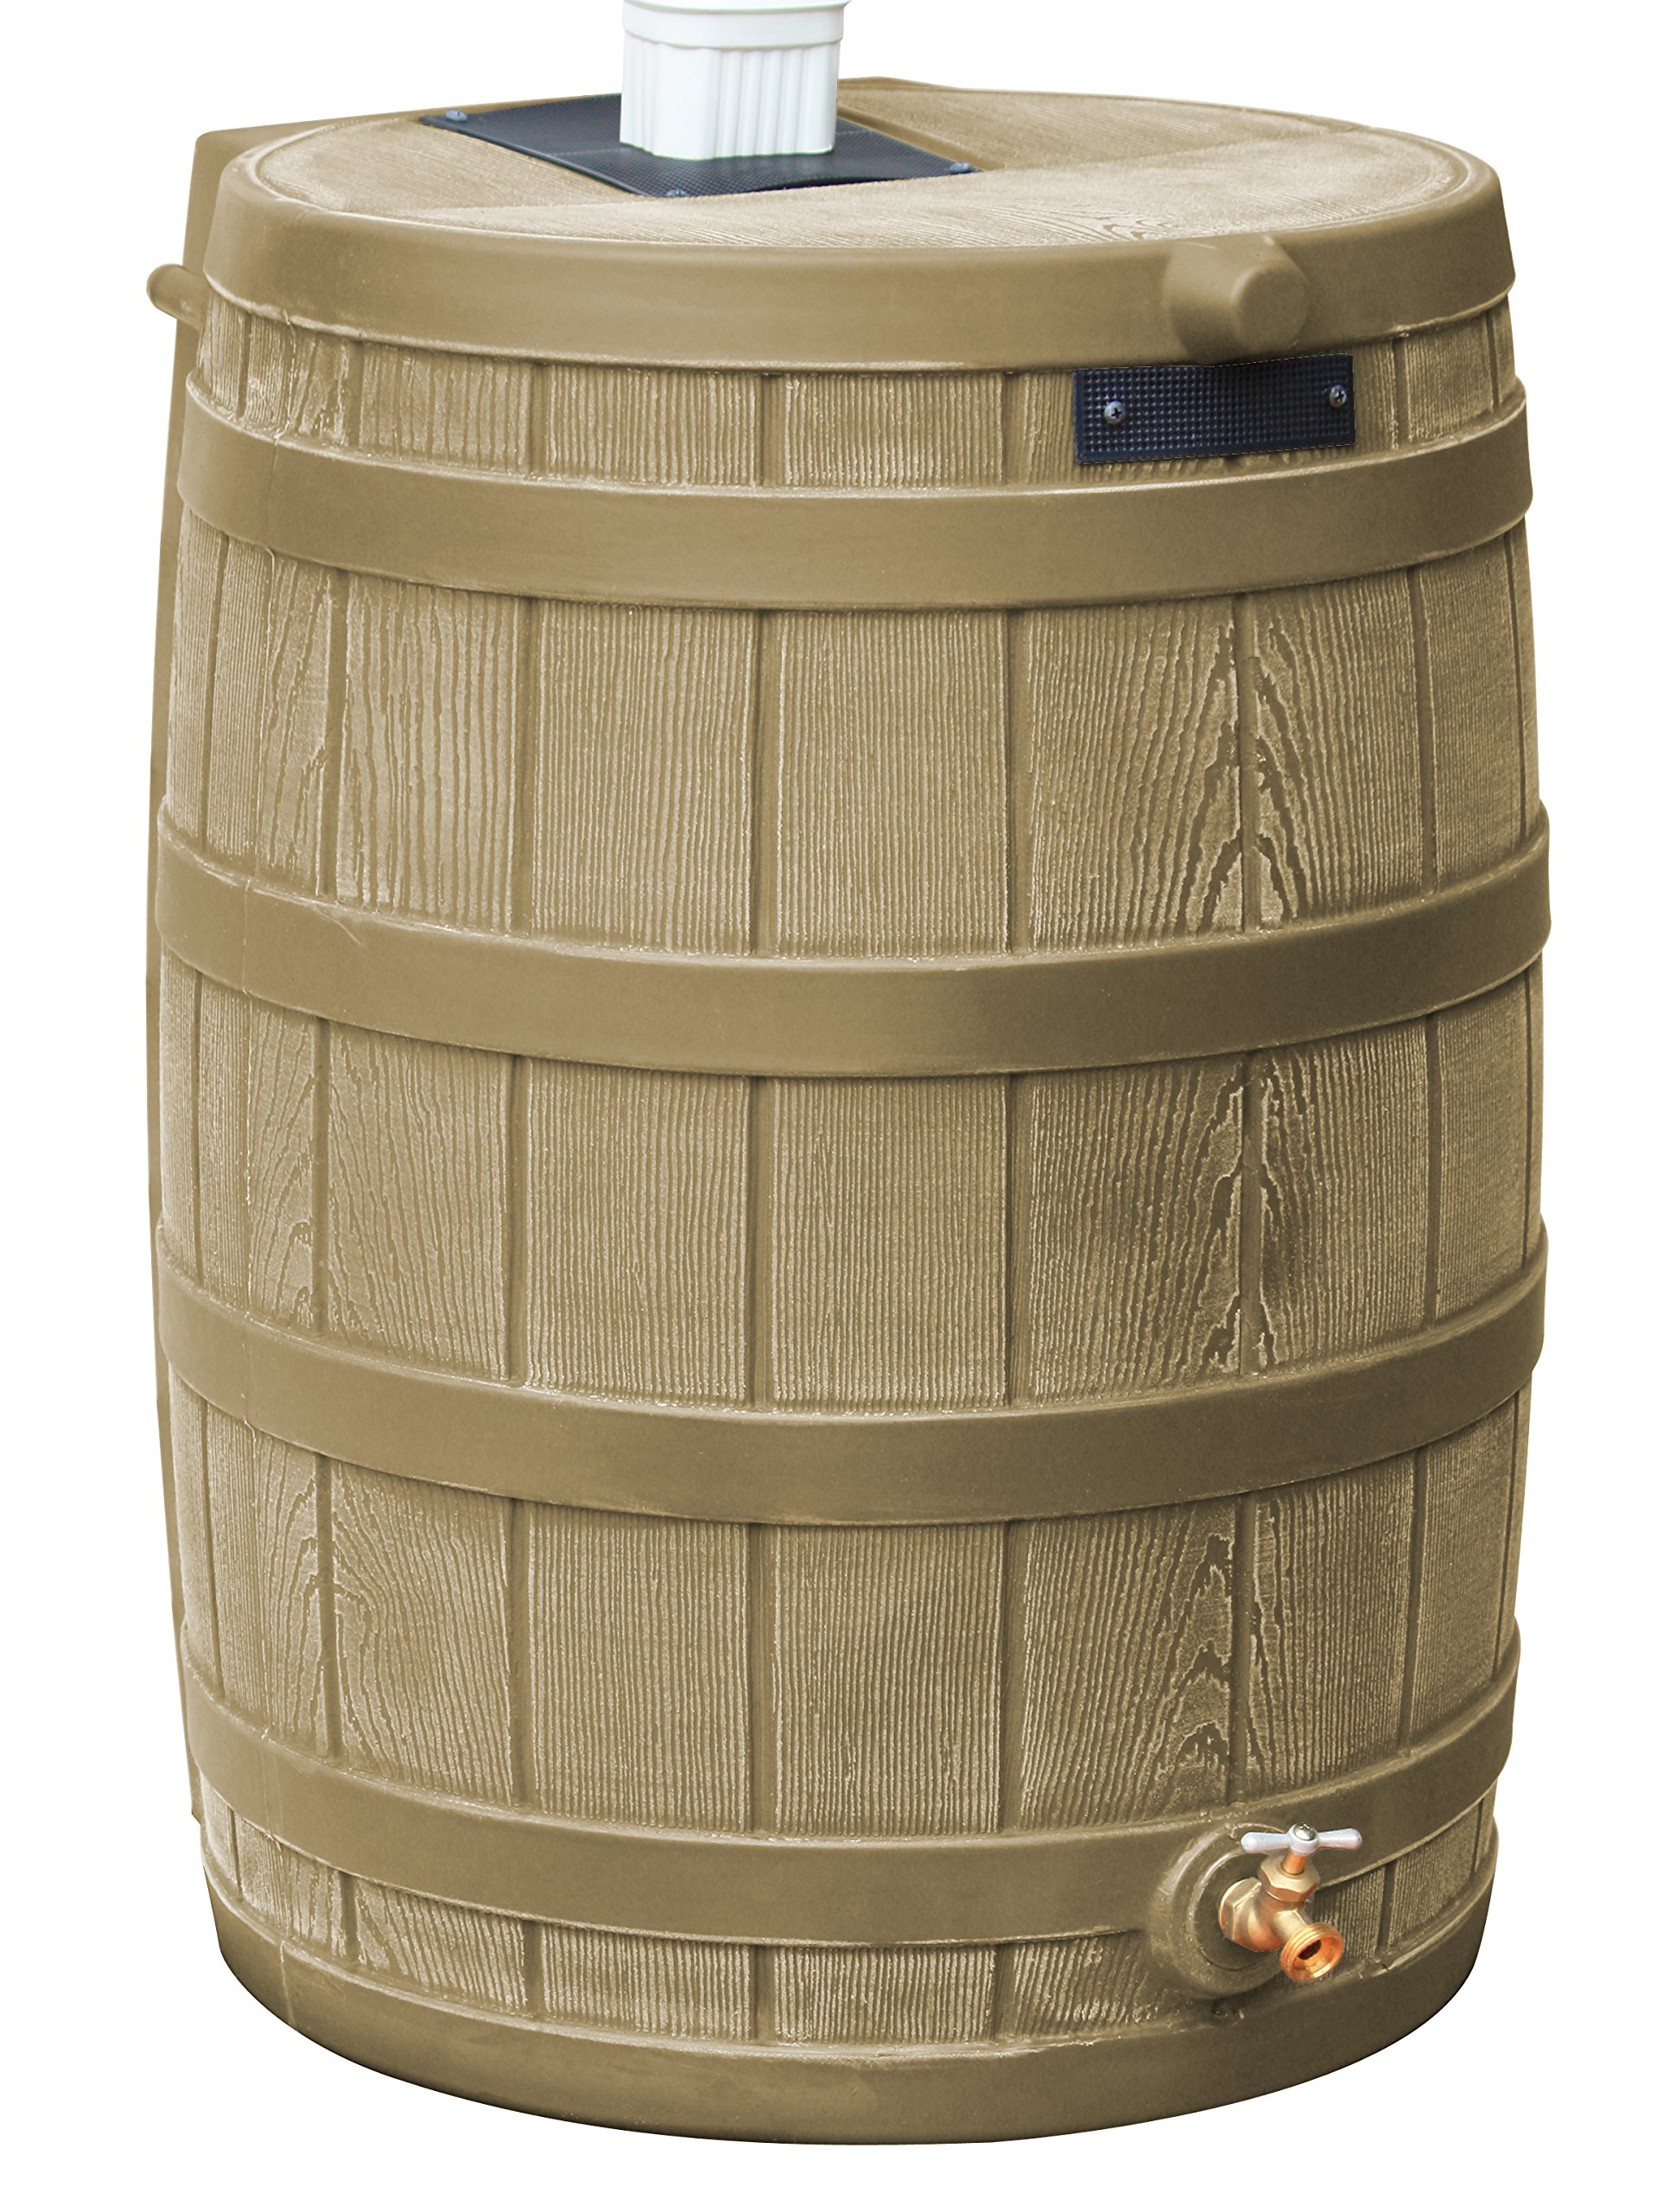 Good Ideas RW50-KHA Rain Wizard Rain Barrel 50-Gallon, Khaki by Good Ideas